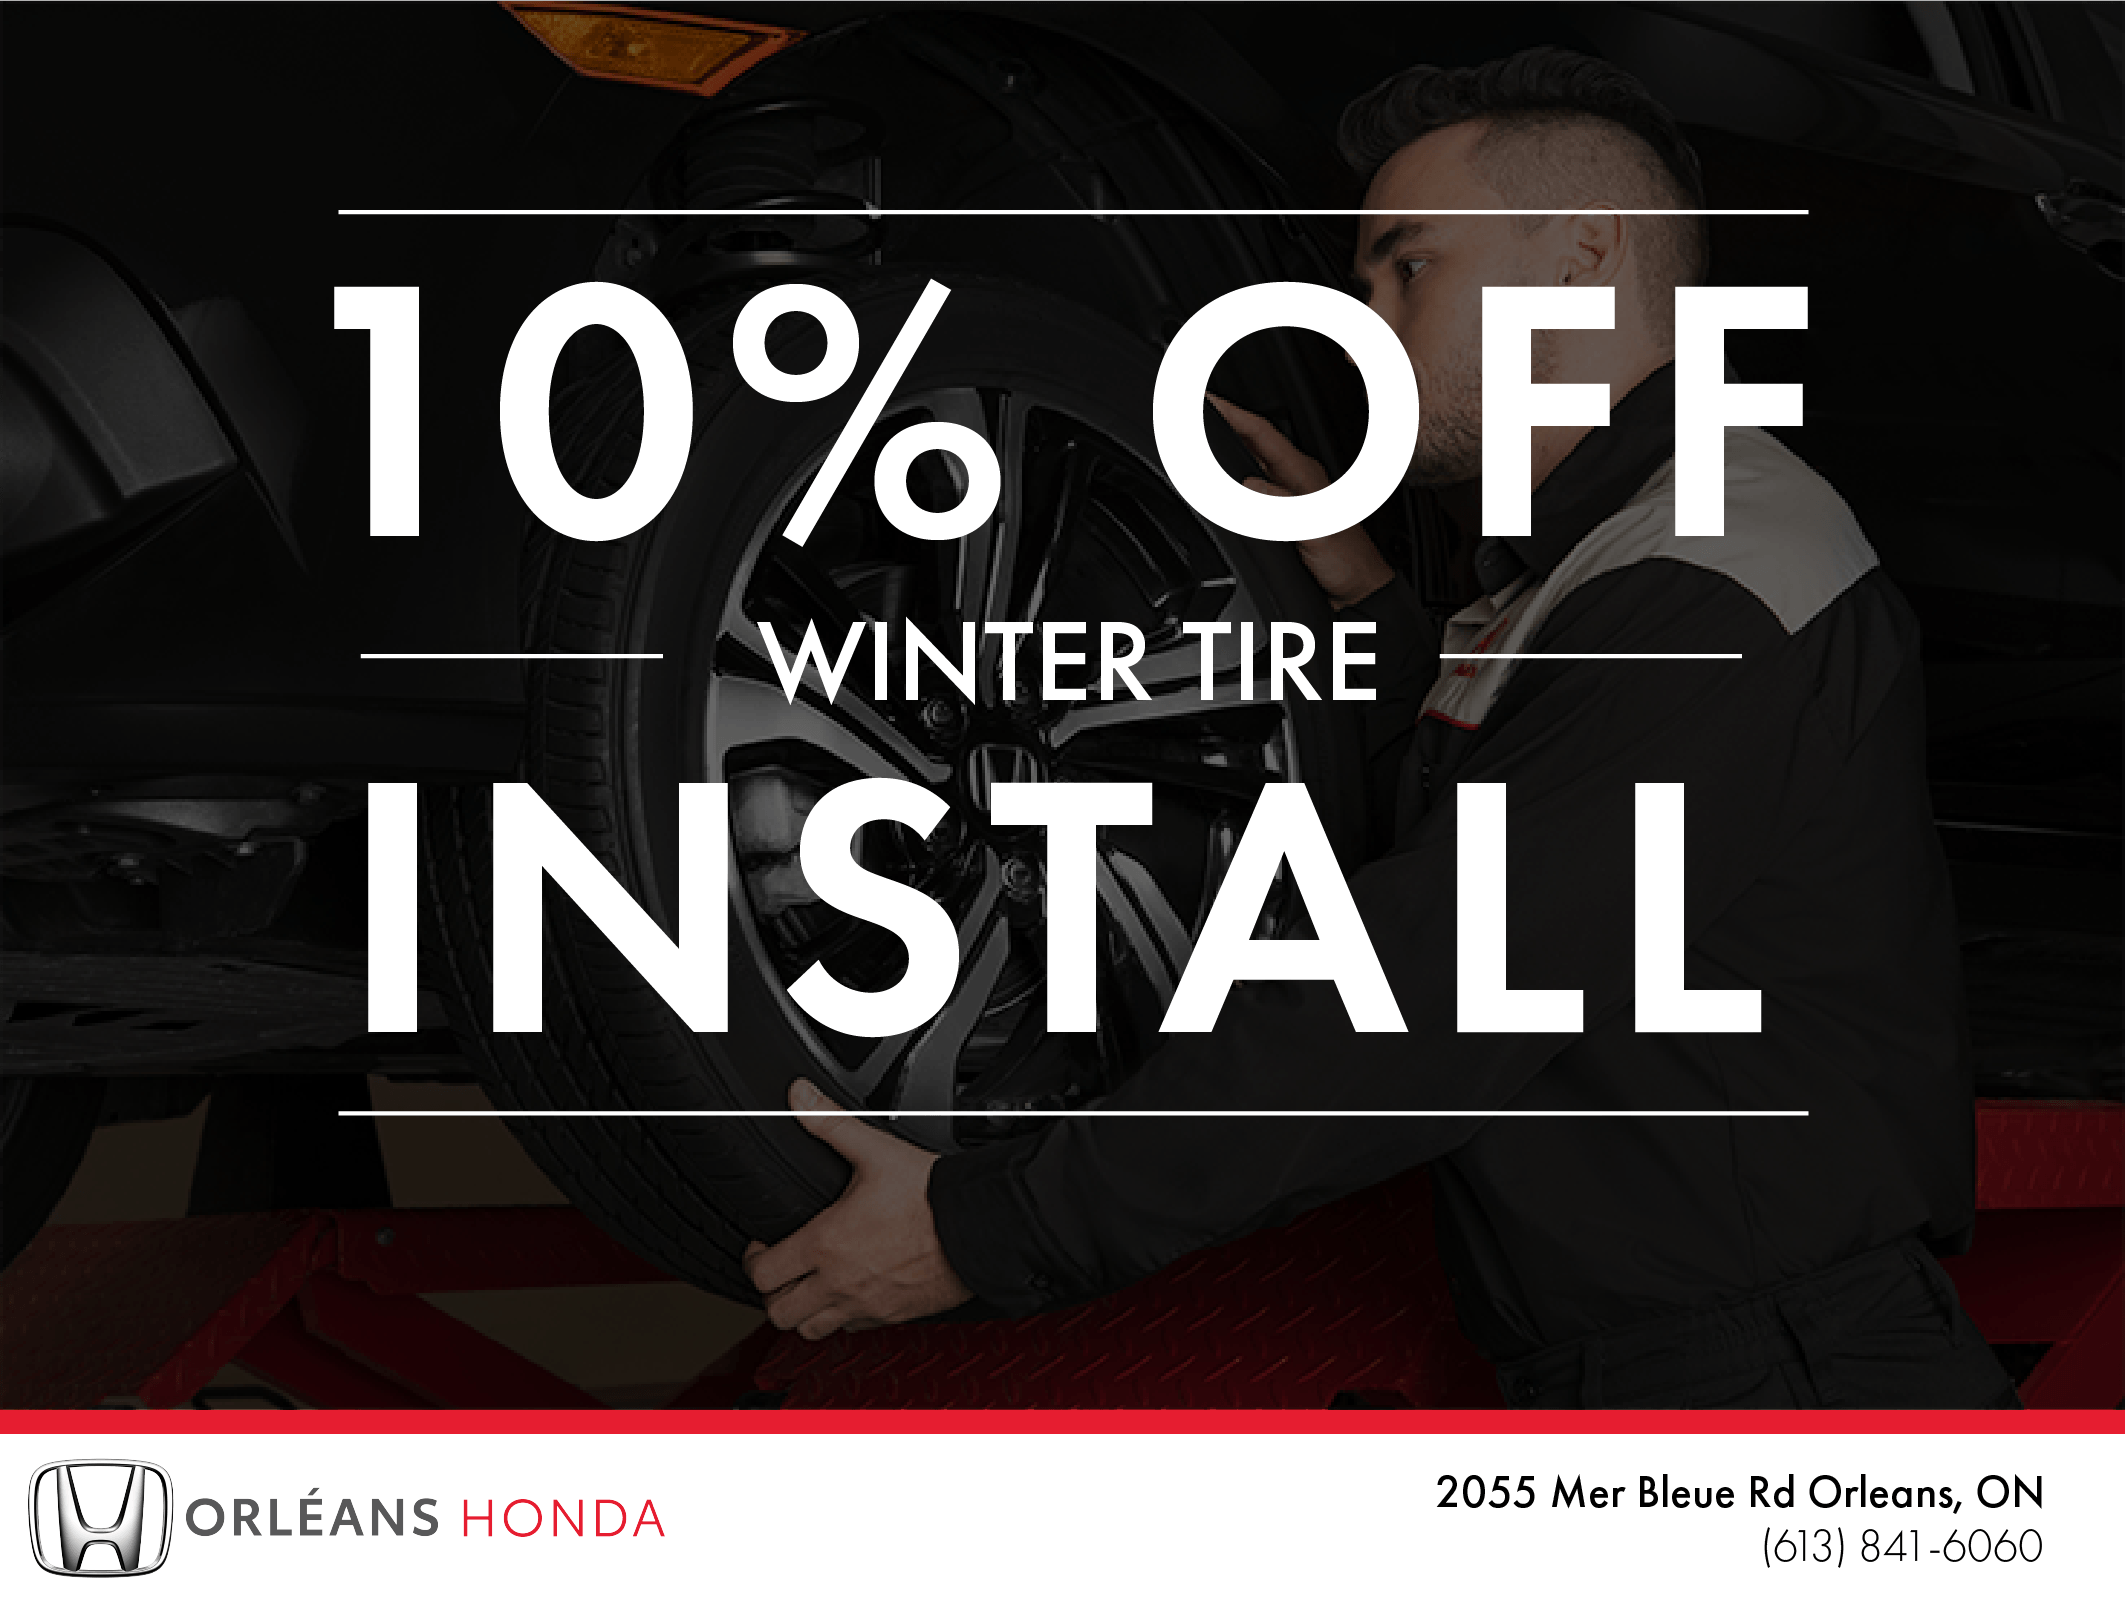 10% Off Winter Tire Install